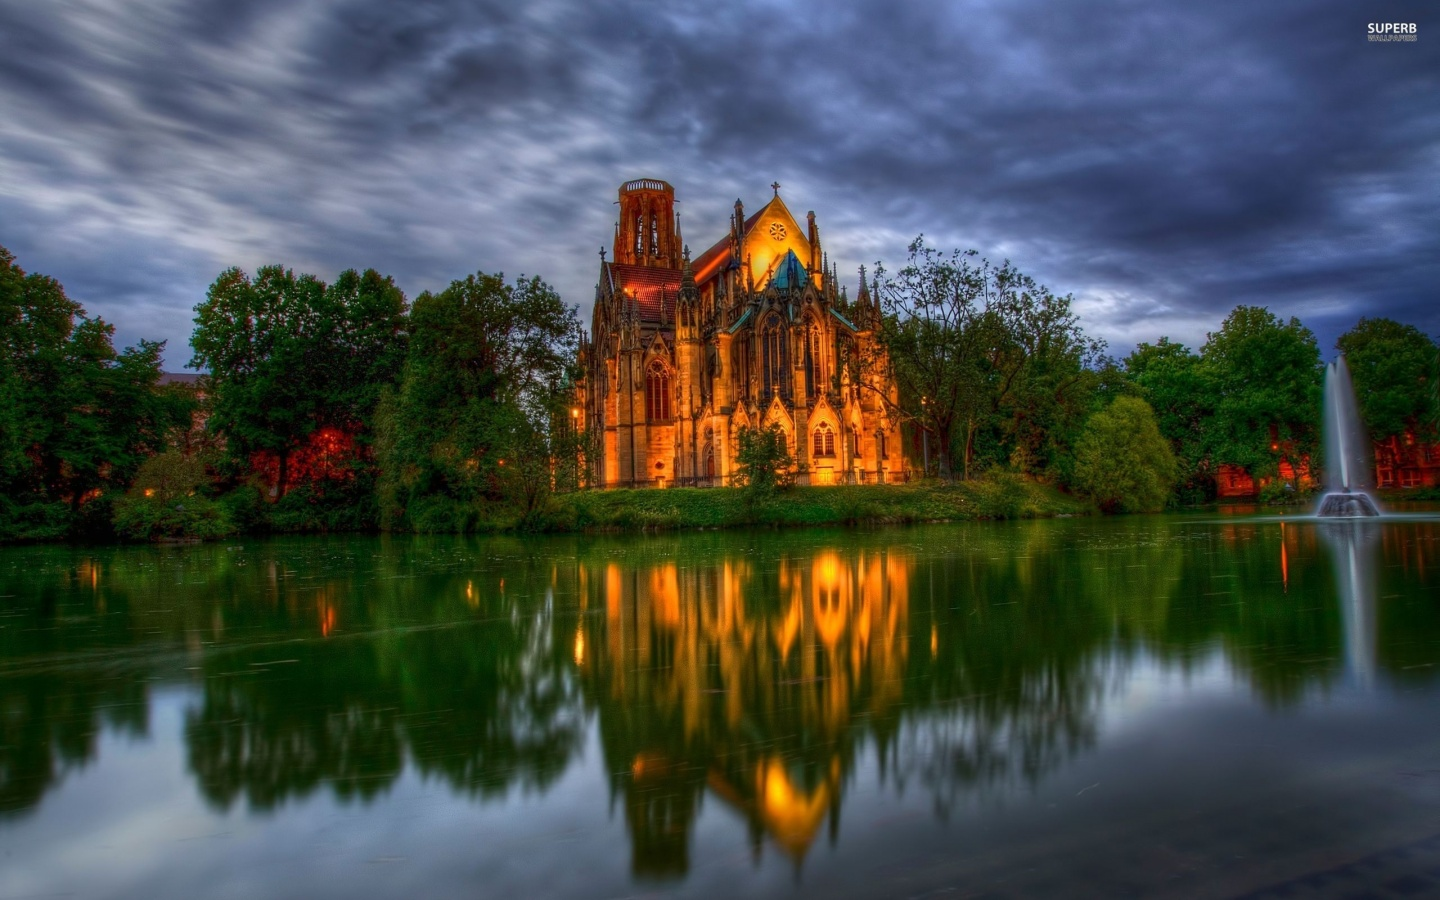 1440x900 Lakeside cathedral, church, world